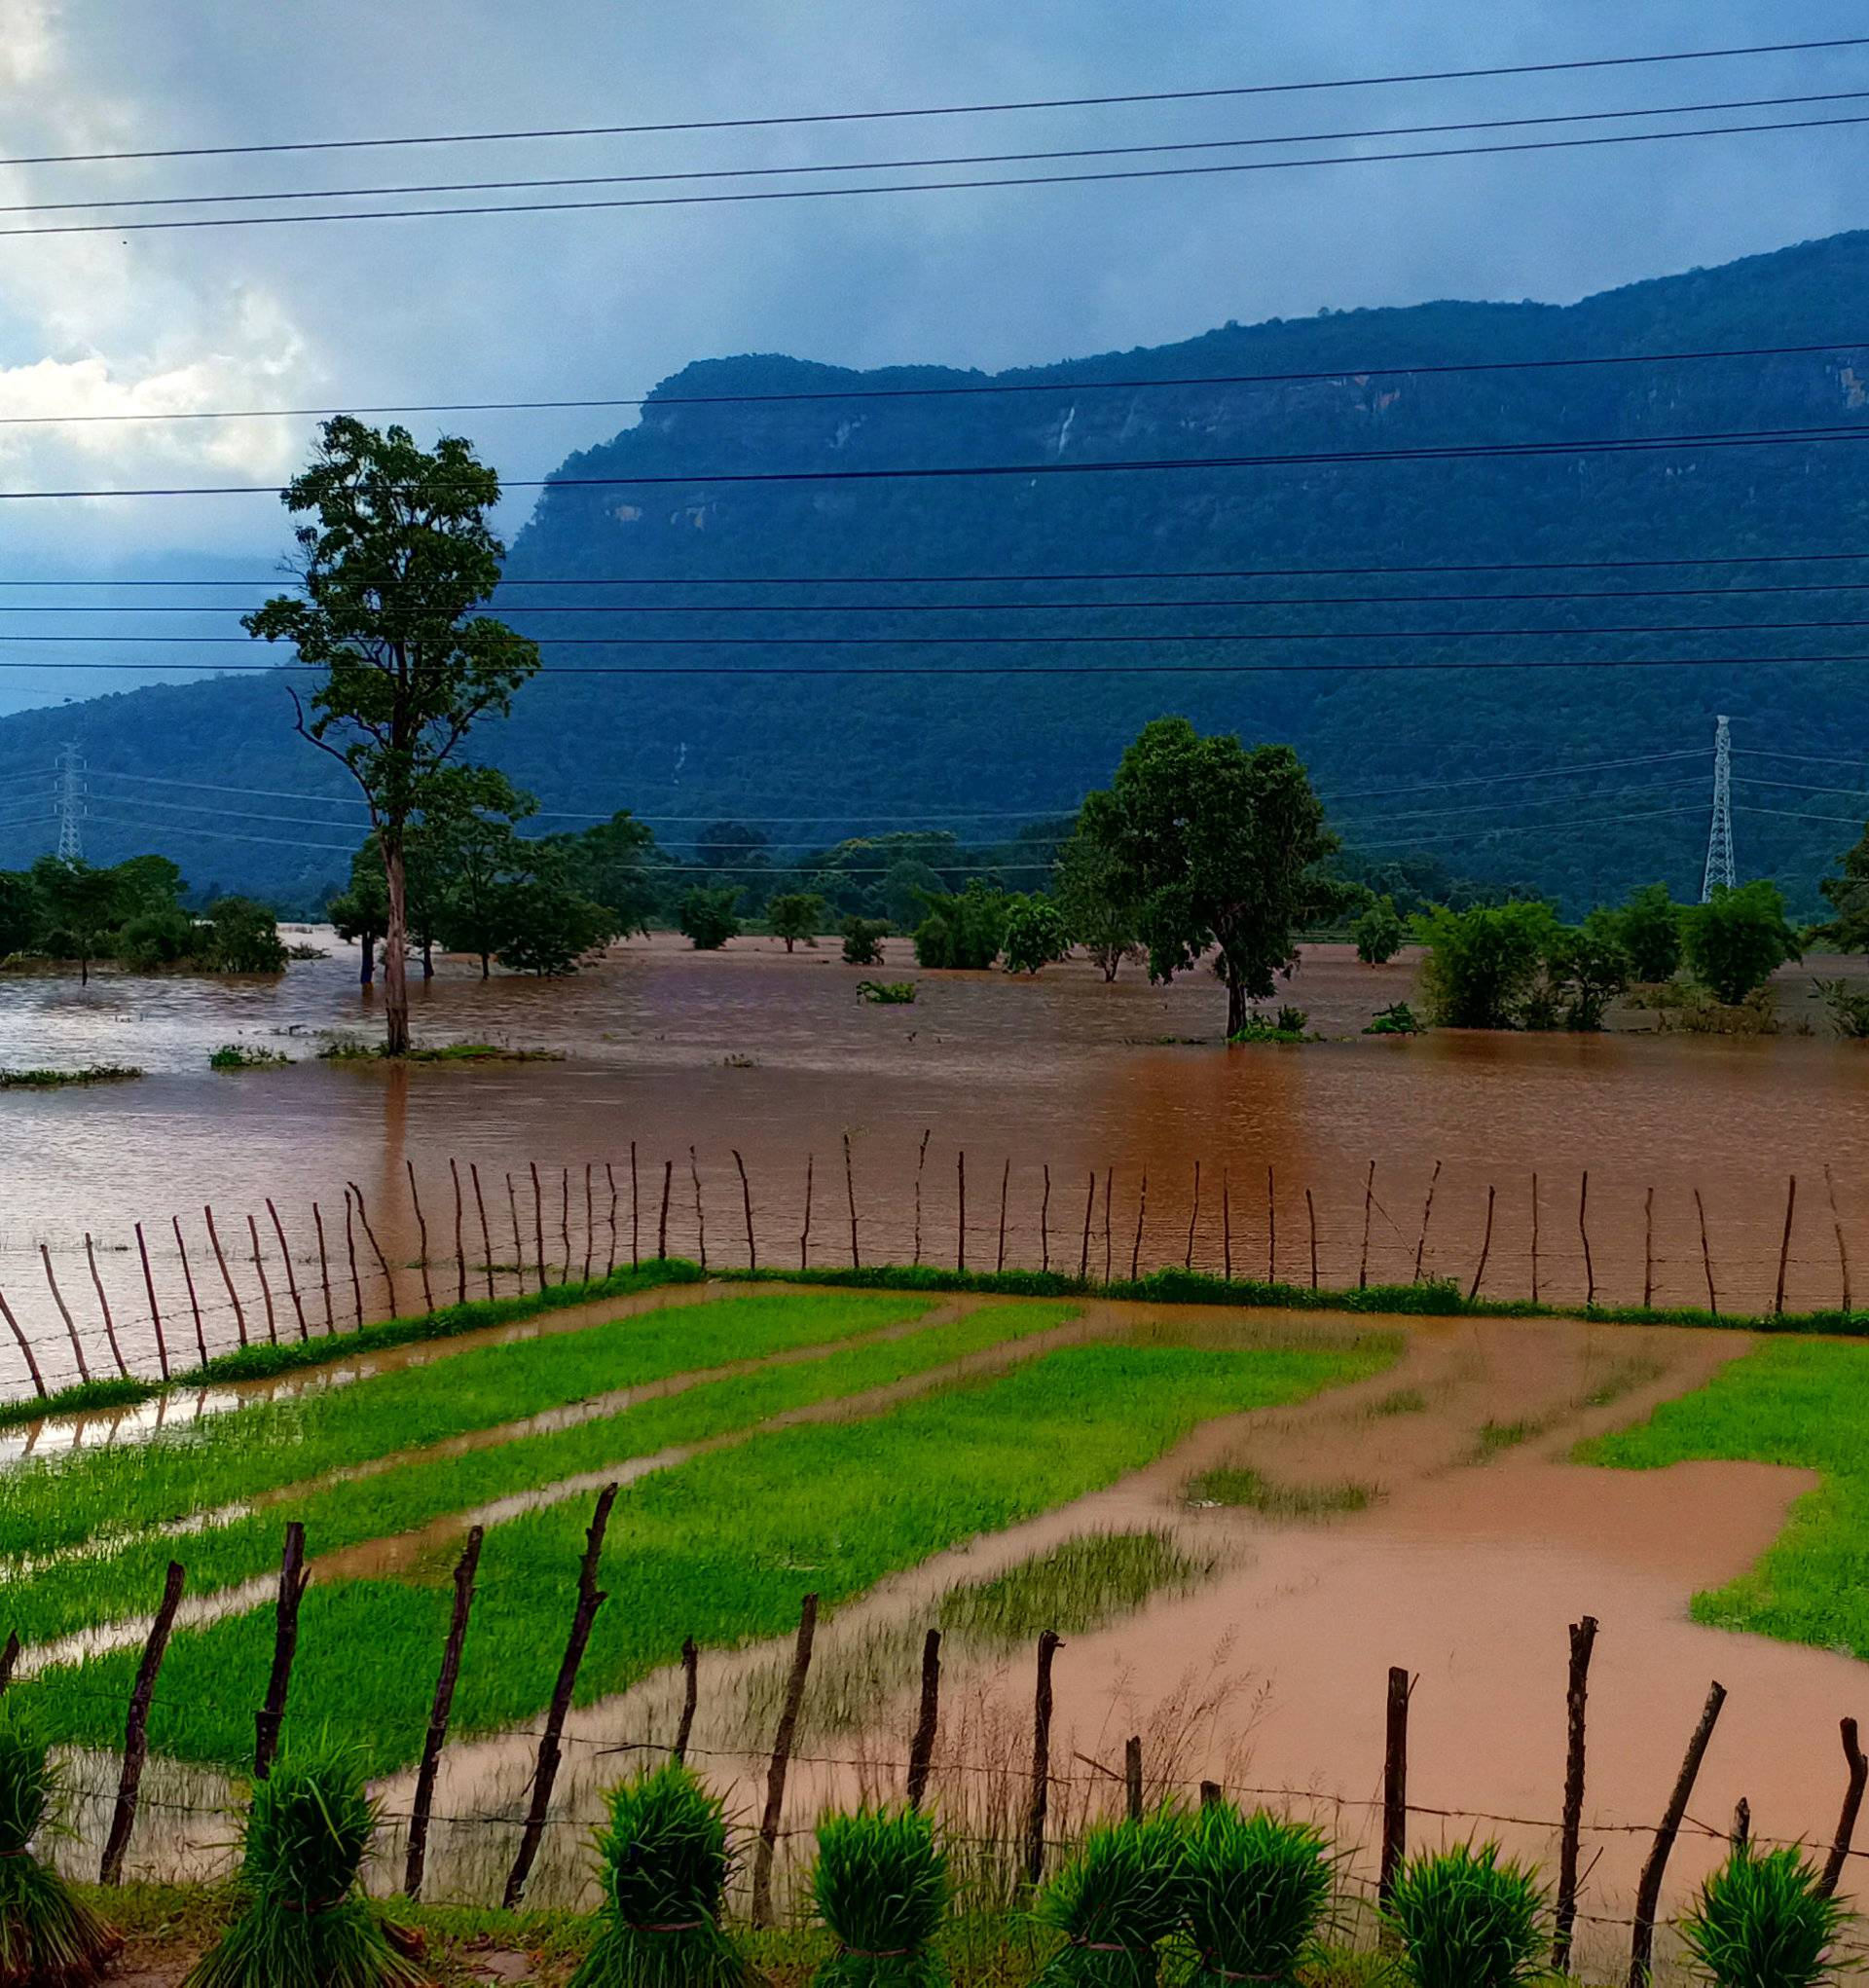 Flooded fields are seen after the Xepian-Xe Nam Noy hydropower dam collapsed in Attapeu province